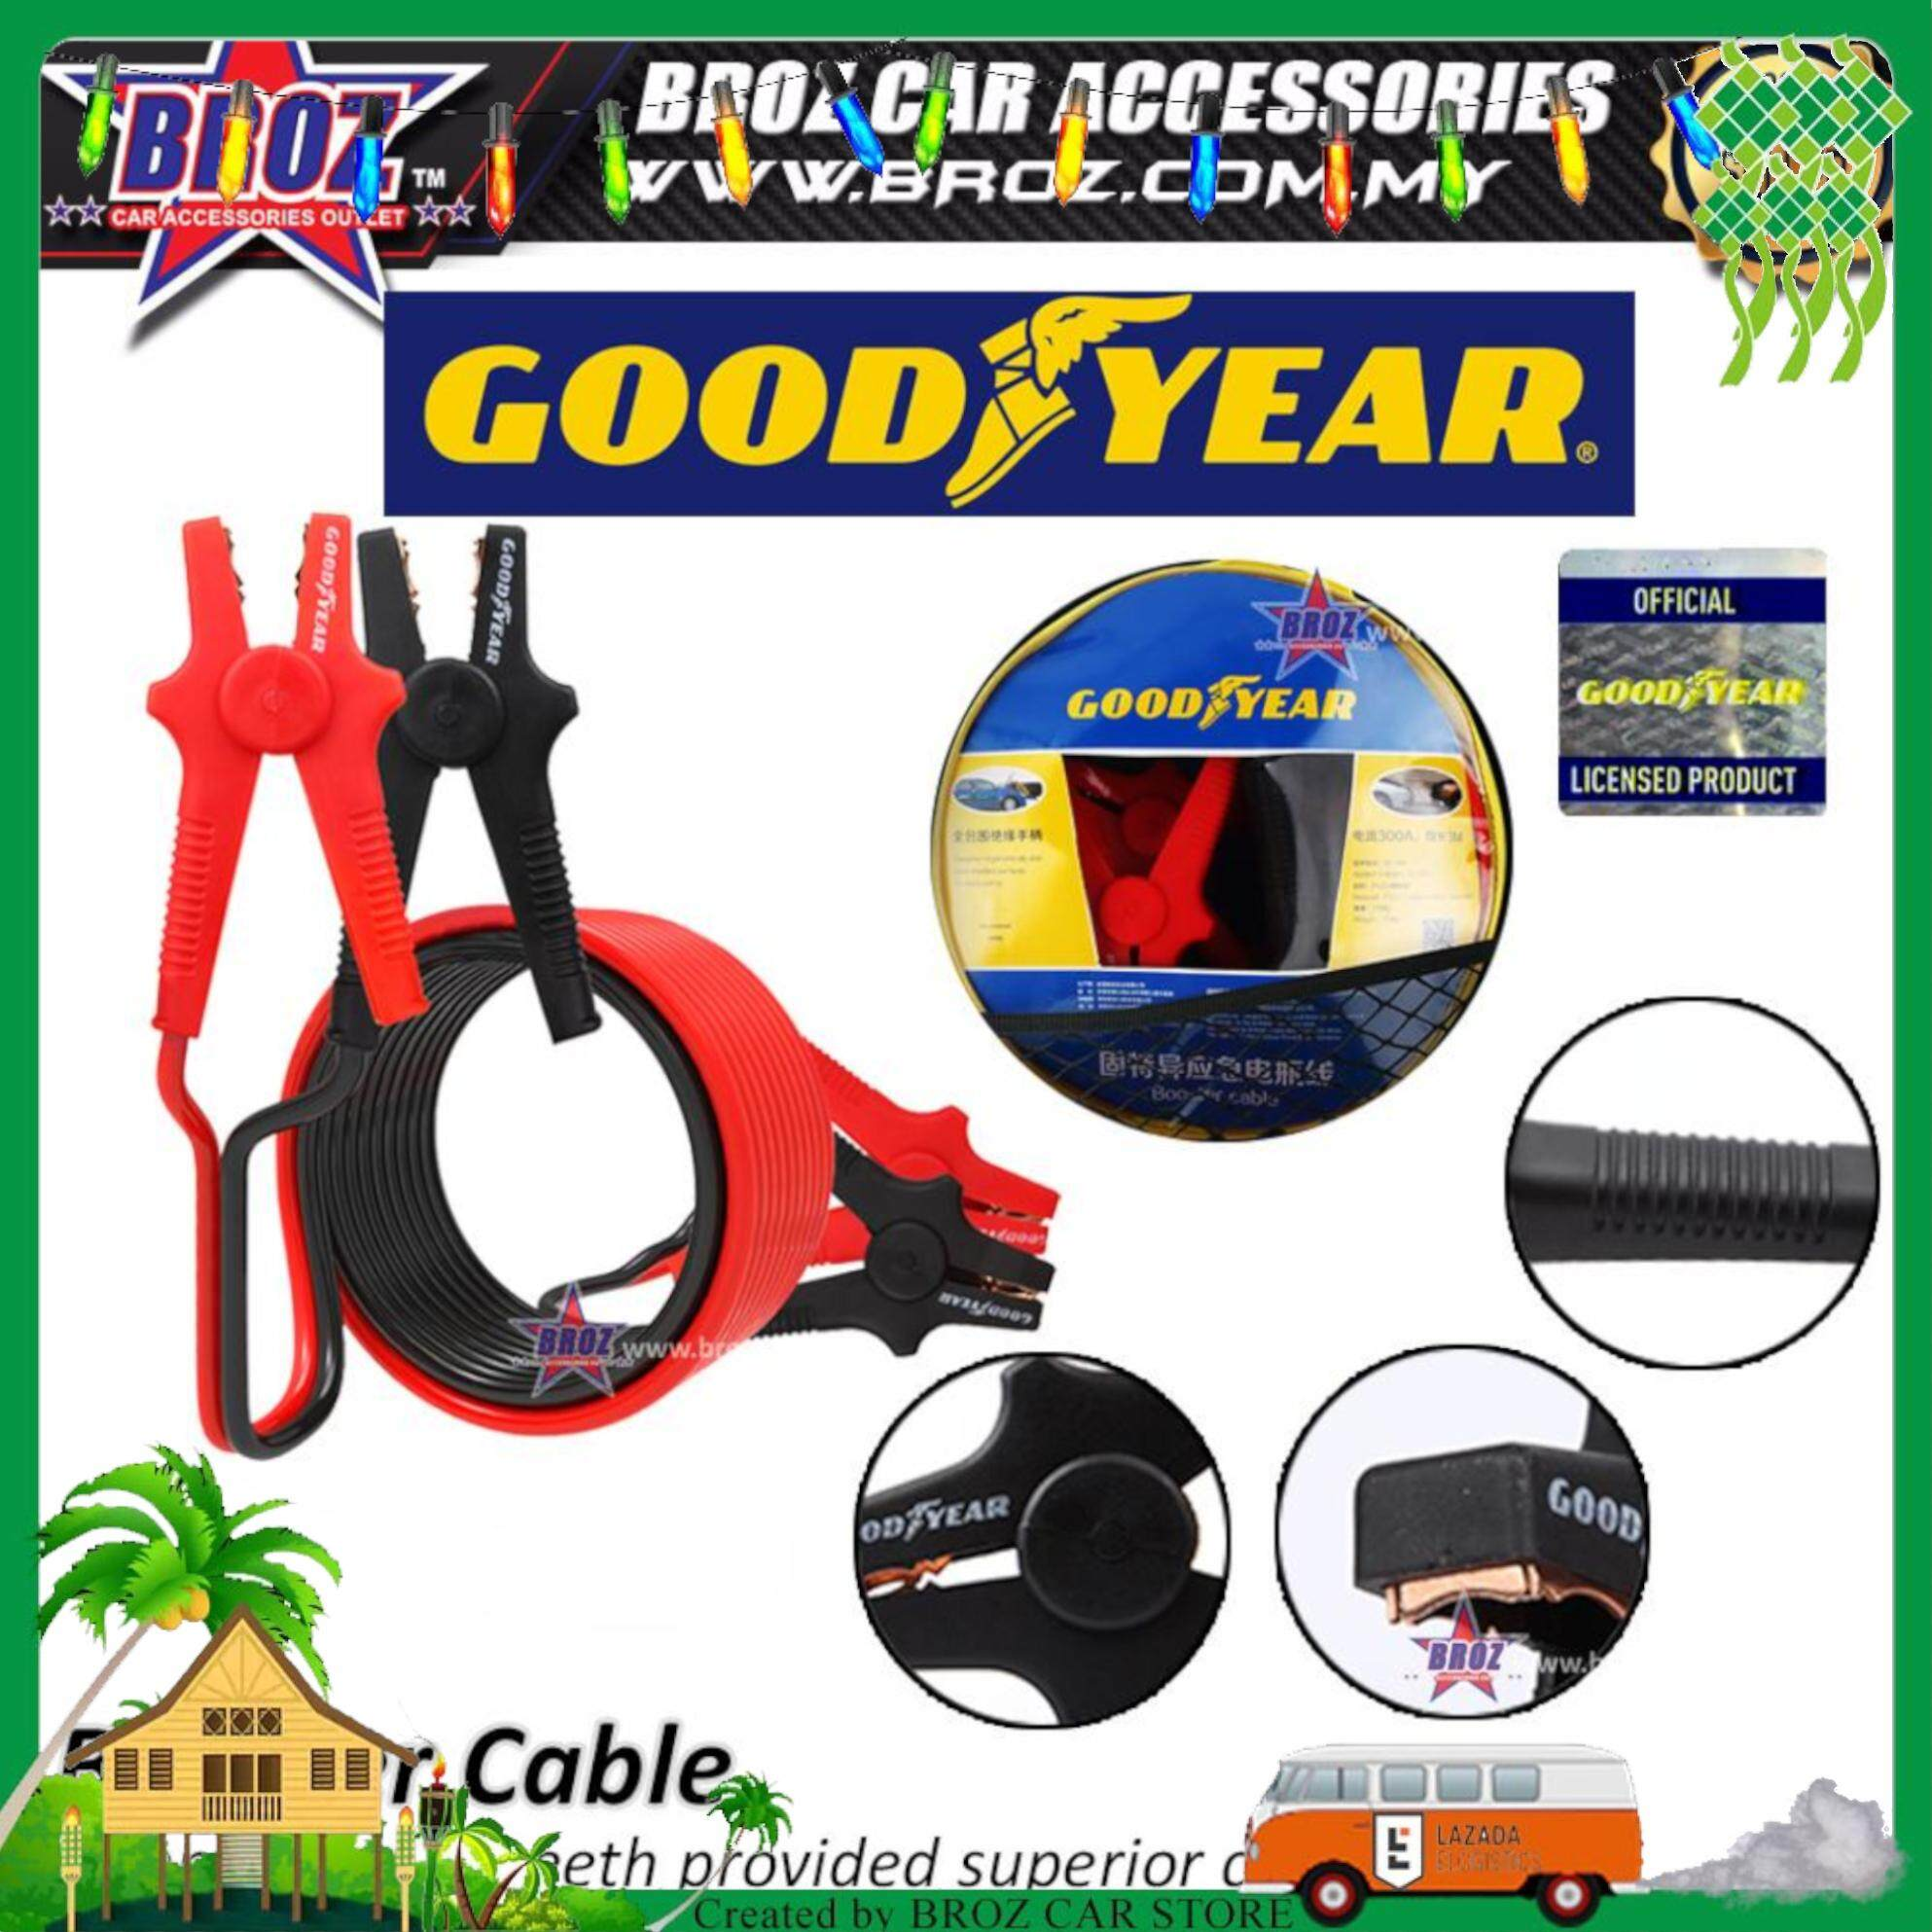 Broz Goodyear GY-2609 300AMP 3 Meter Car Battery Booster Jumper Cable